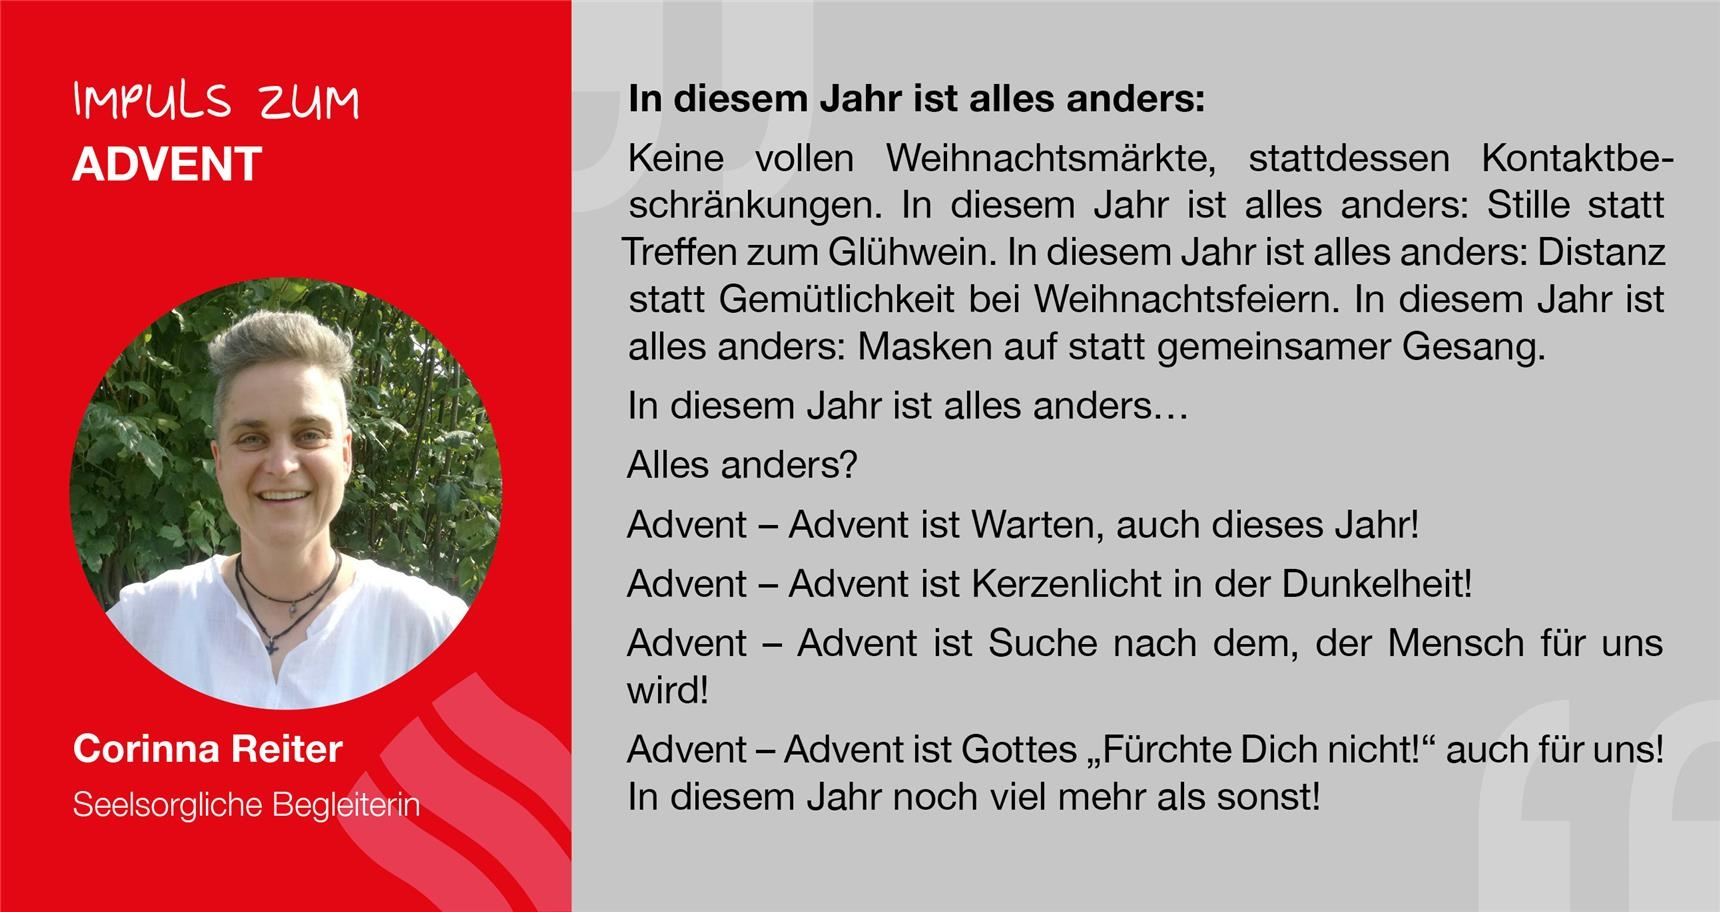 Impuls zum 3. Advent